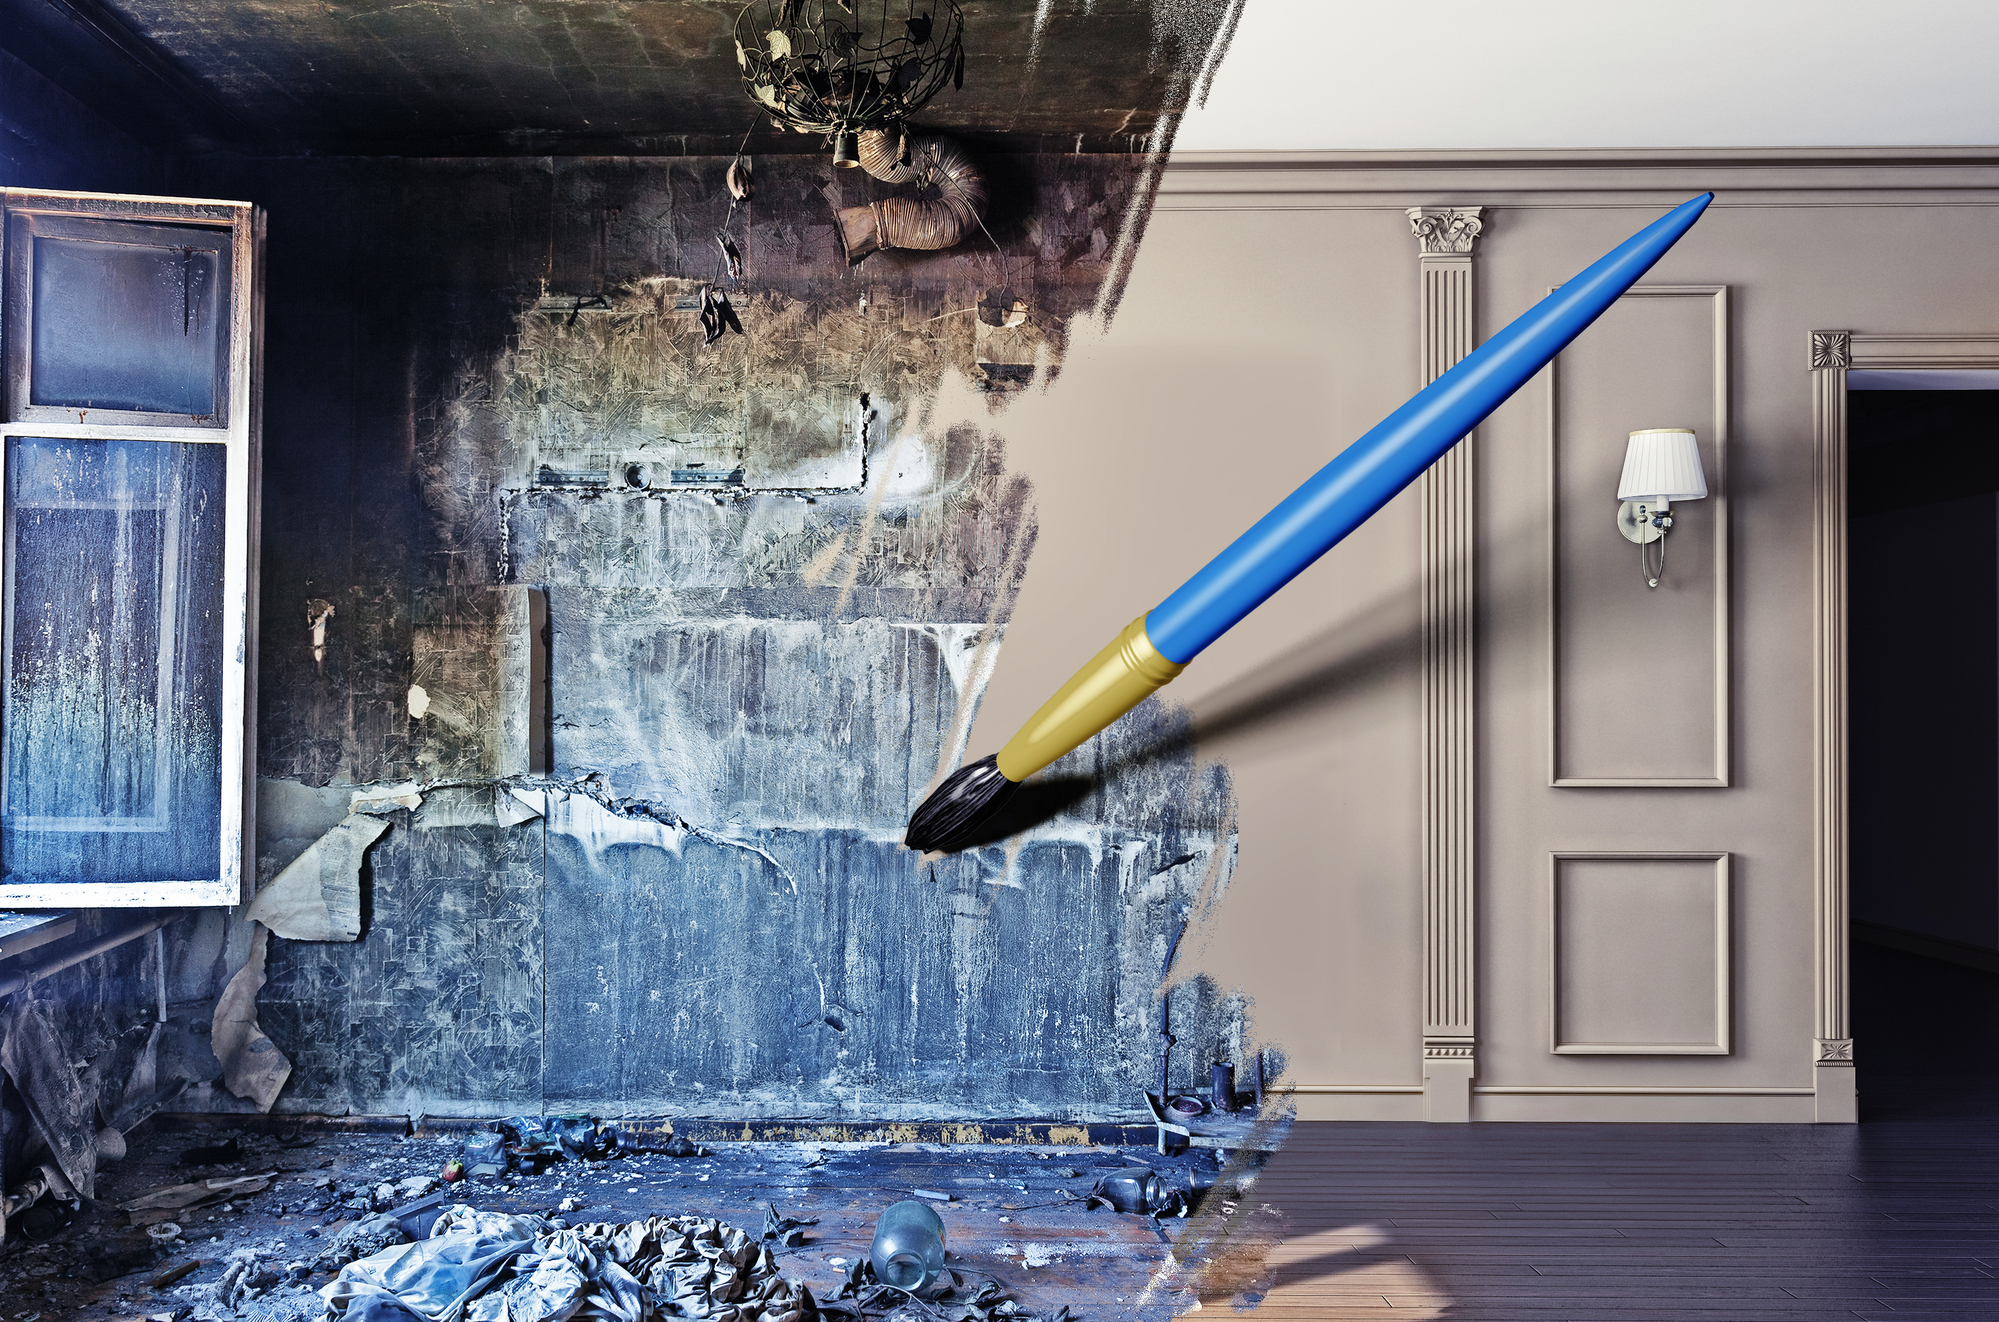 drawing beautiful interior over dirty image.